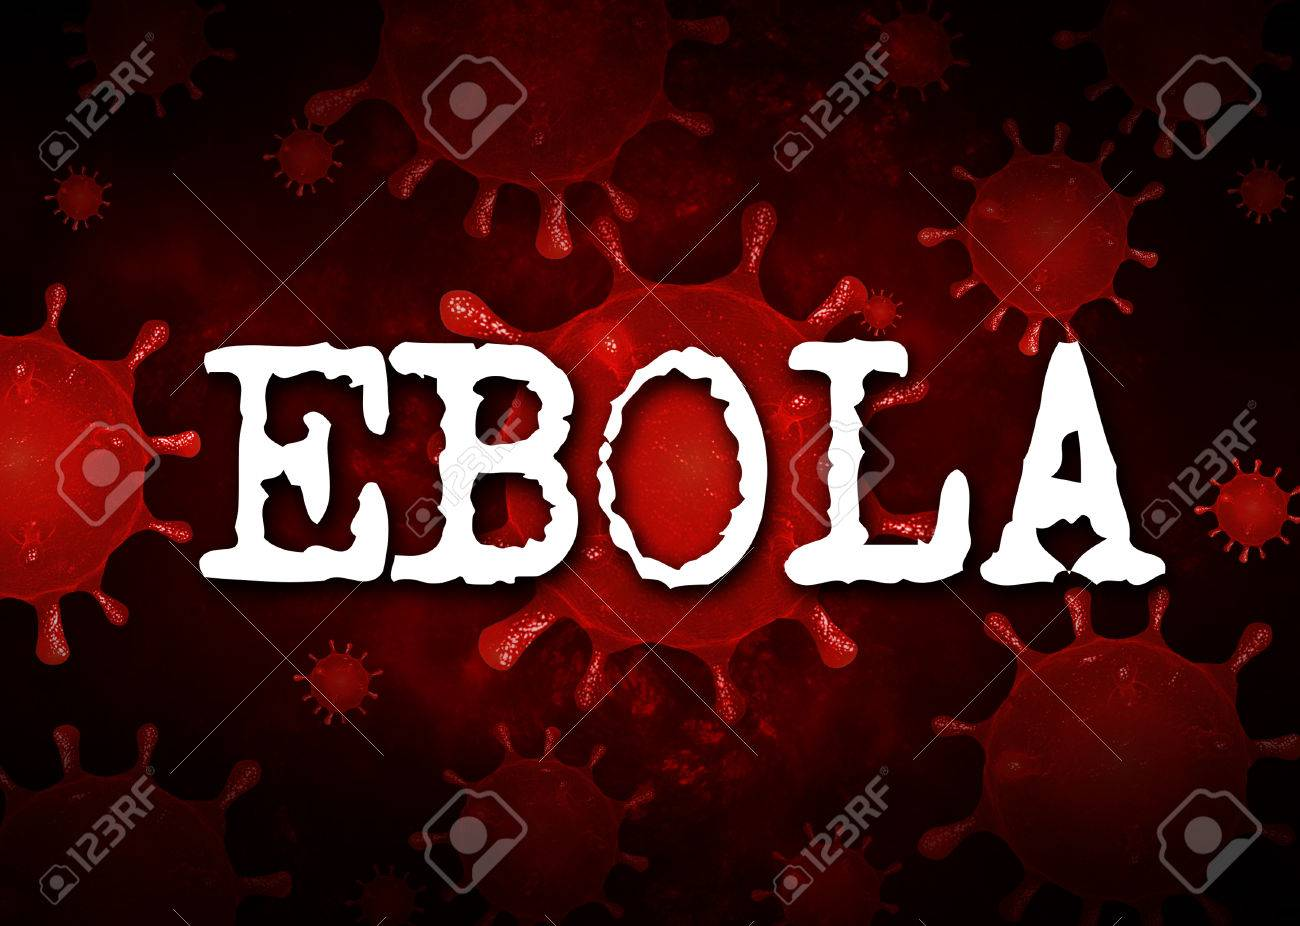 Ebola Virus Background Red Respiratory Syndrome Stock Photo 1300x926